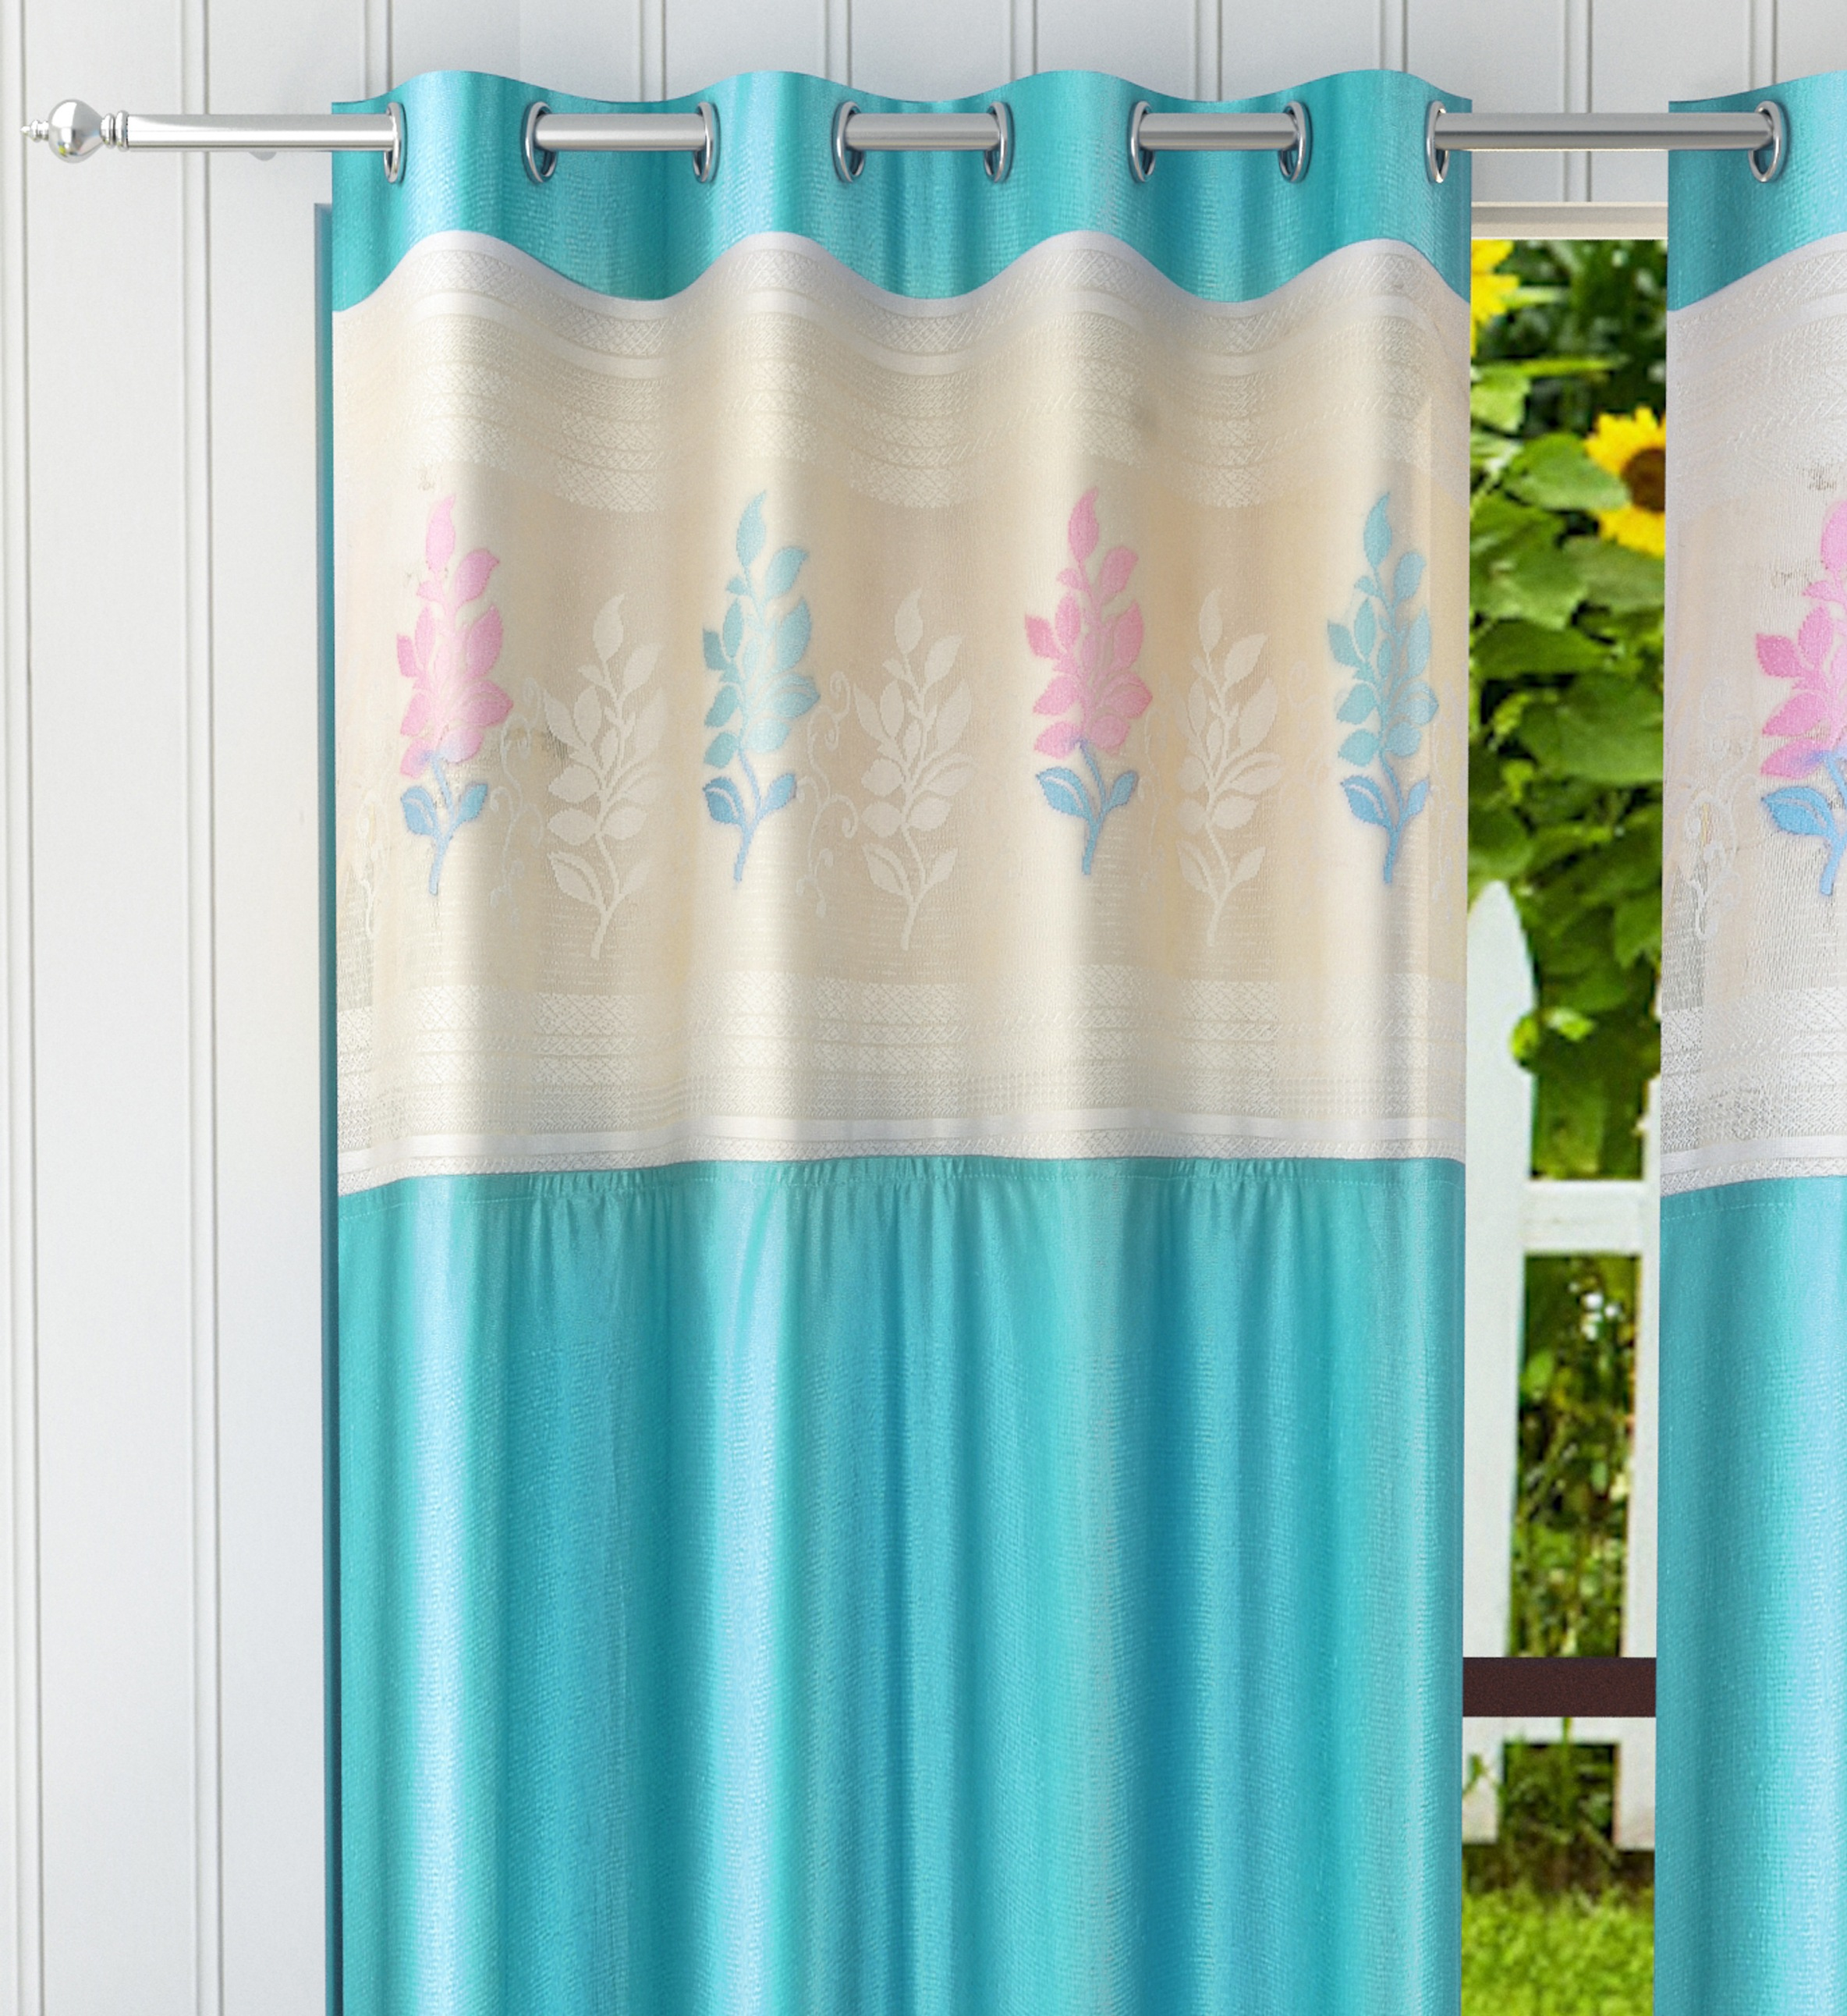 Homefab India 2 Piece Polyester  Curtain with Floral Net (Setof2HF786EuroNetAqua)